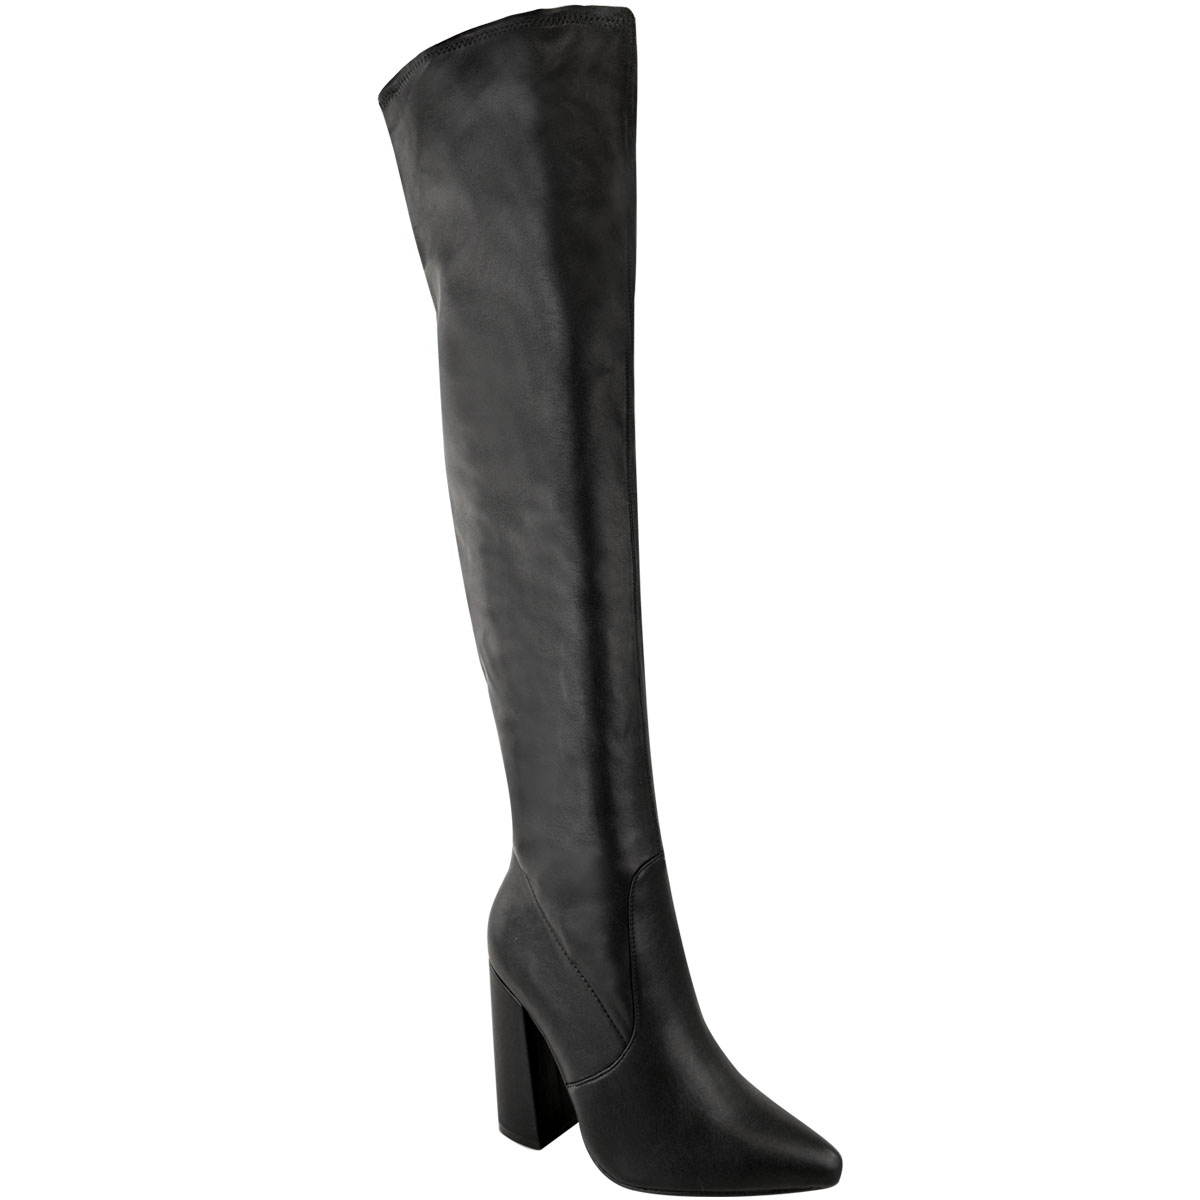 Womens-Ladies-Thigh-High-Boots-Lycra-Over-The-Knee-Pointy-Block-High-Heels-Size Indexbild 13